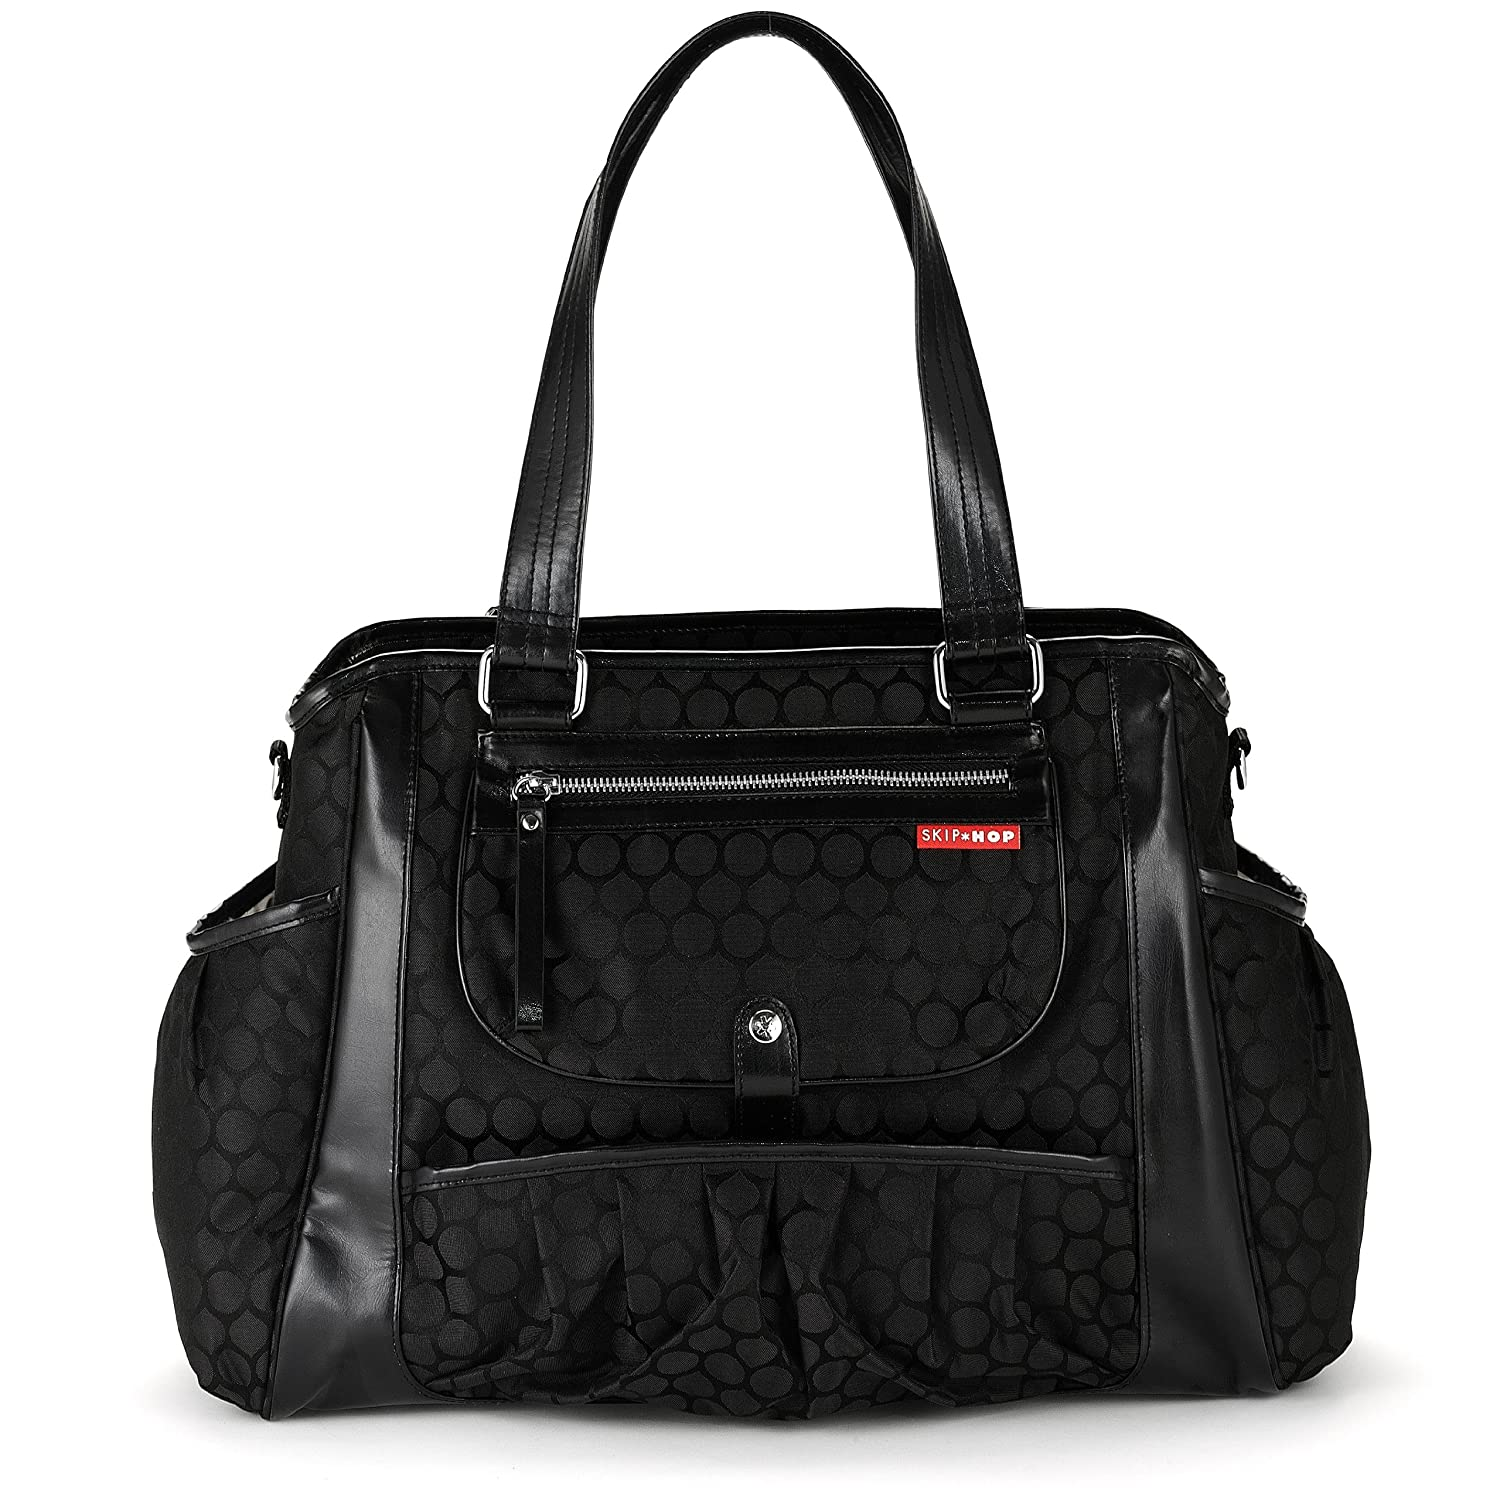 5a0b24dae108 Amazon.com : Skip Hop Studio Diaper Bag, Black Dot (Discontinued by  Manufacturer) : Diaper Tote Bags : Baby